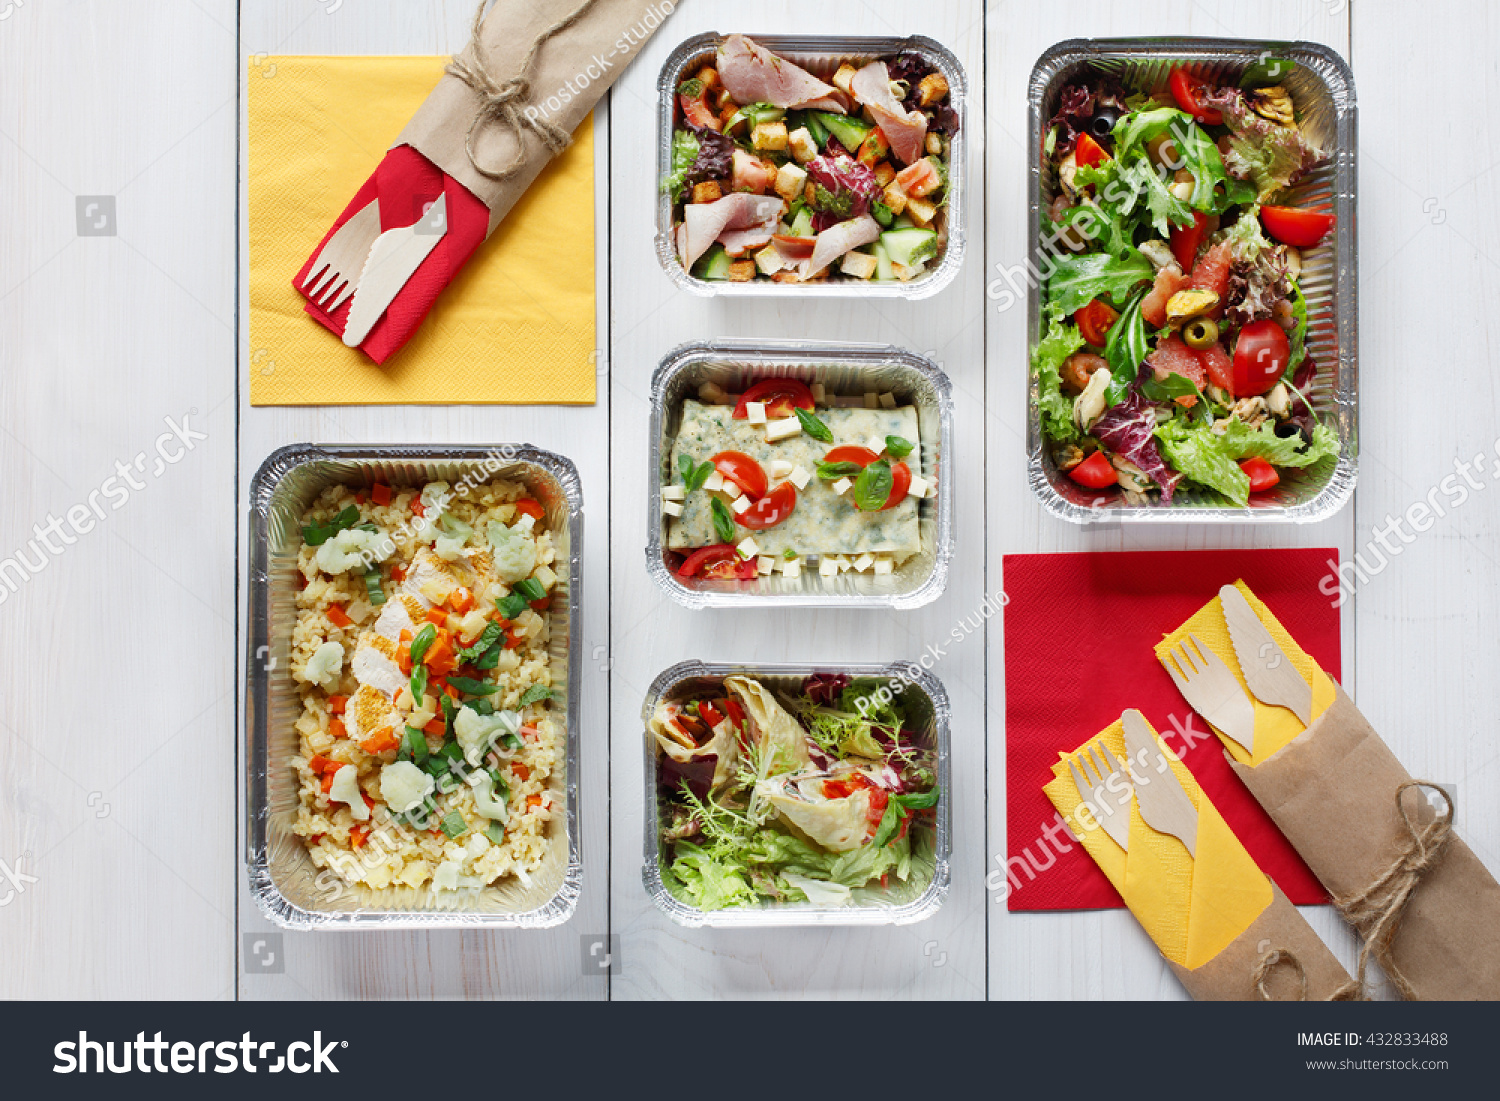 Royalty Free Healthy Food Delivery Take Away Of 432833488 Stock